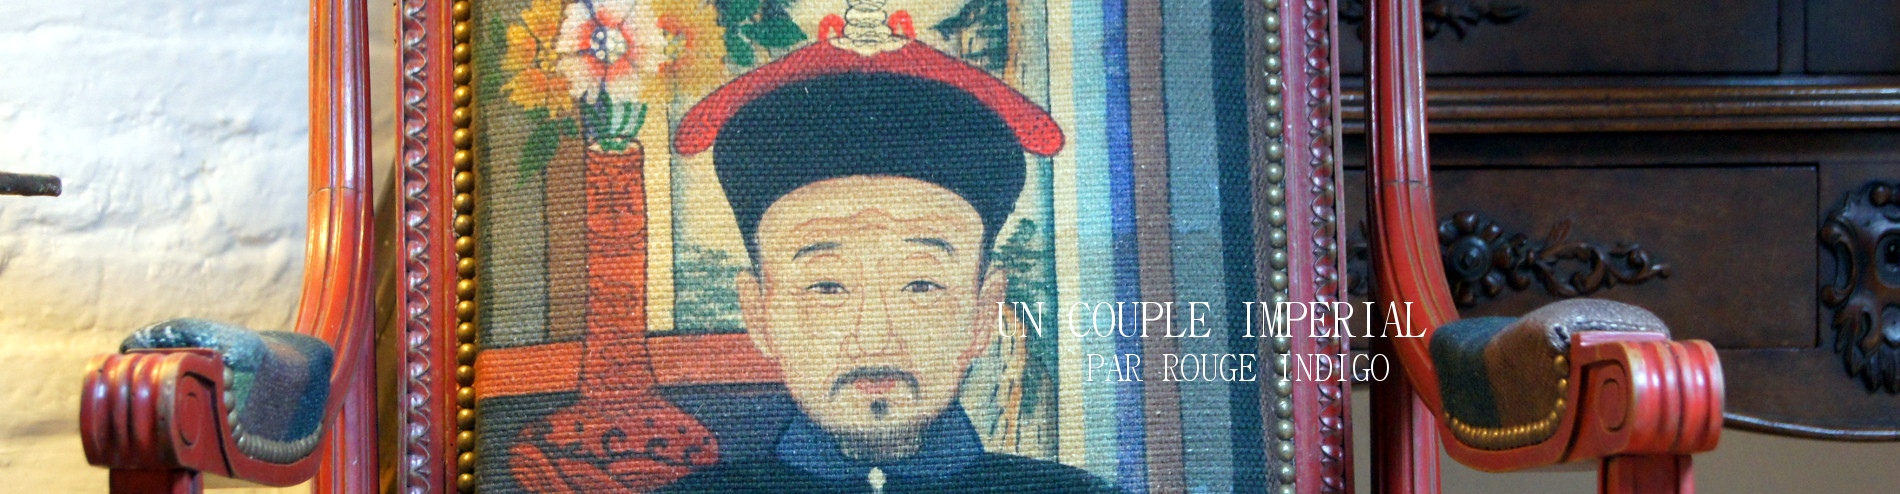 Un couple imp�rial par Rouge Indigo